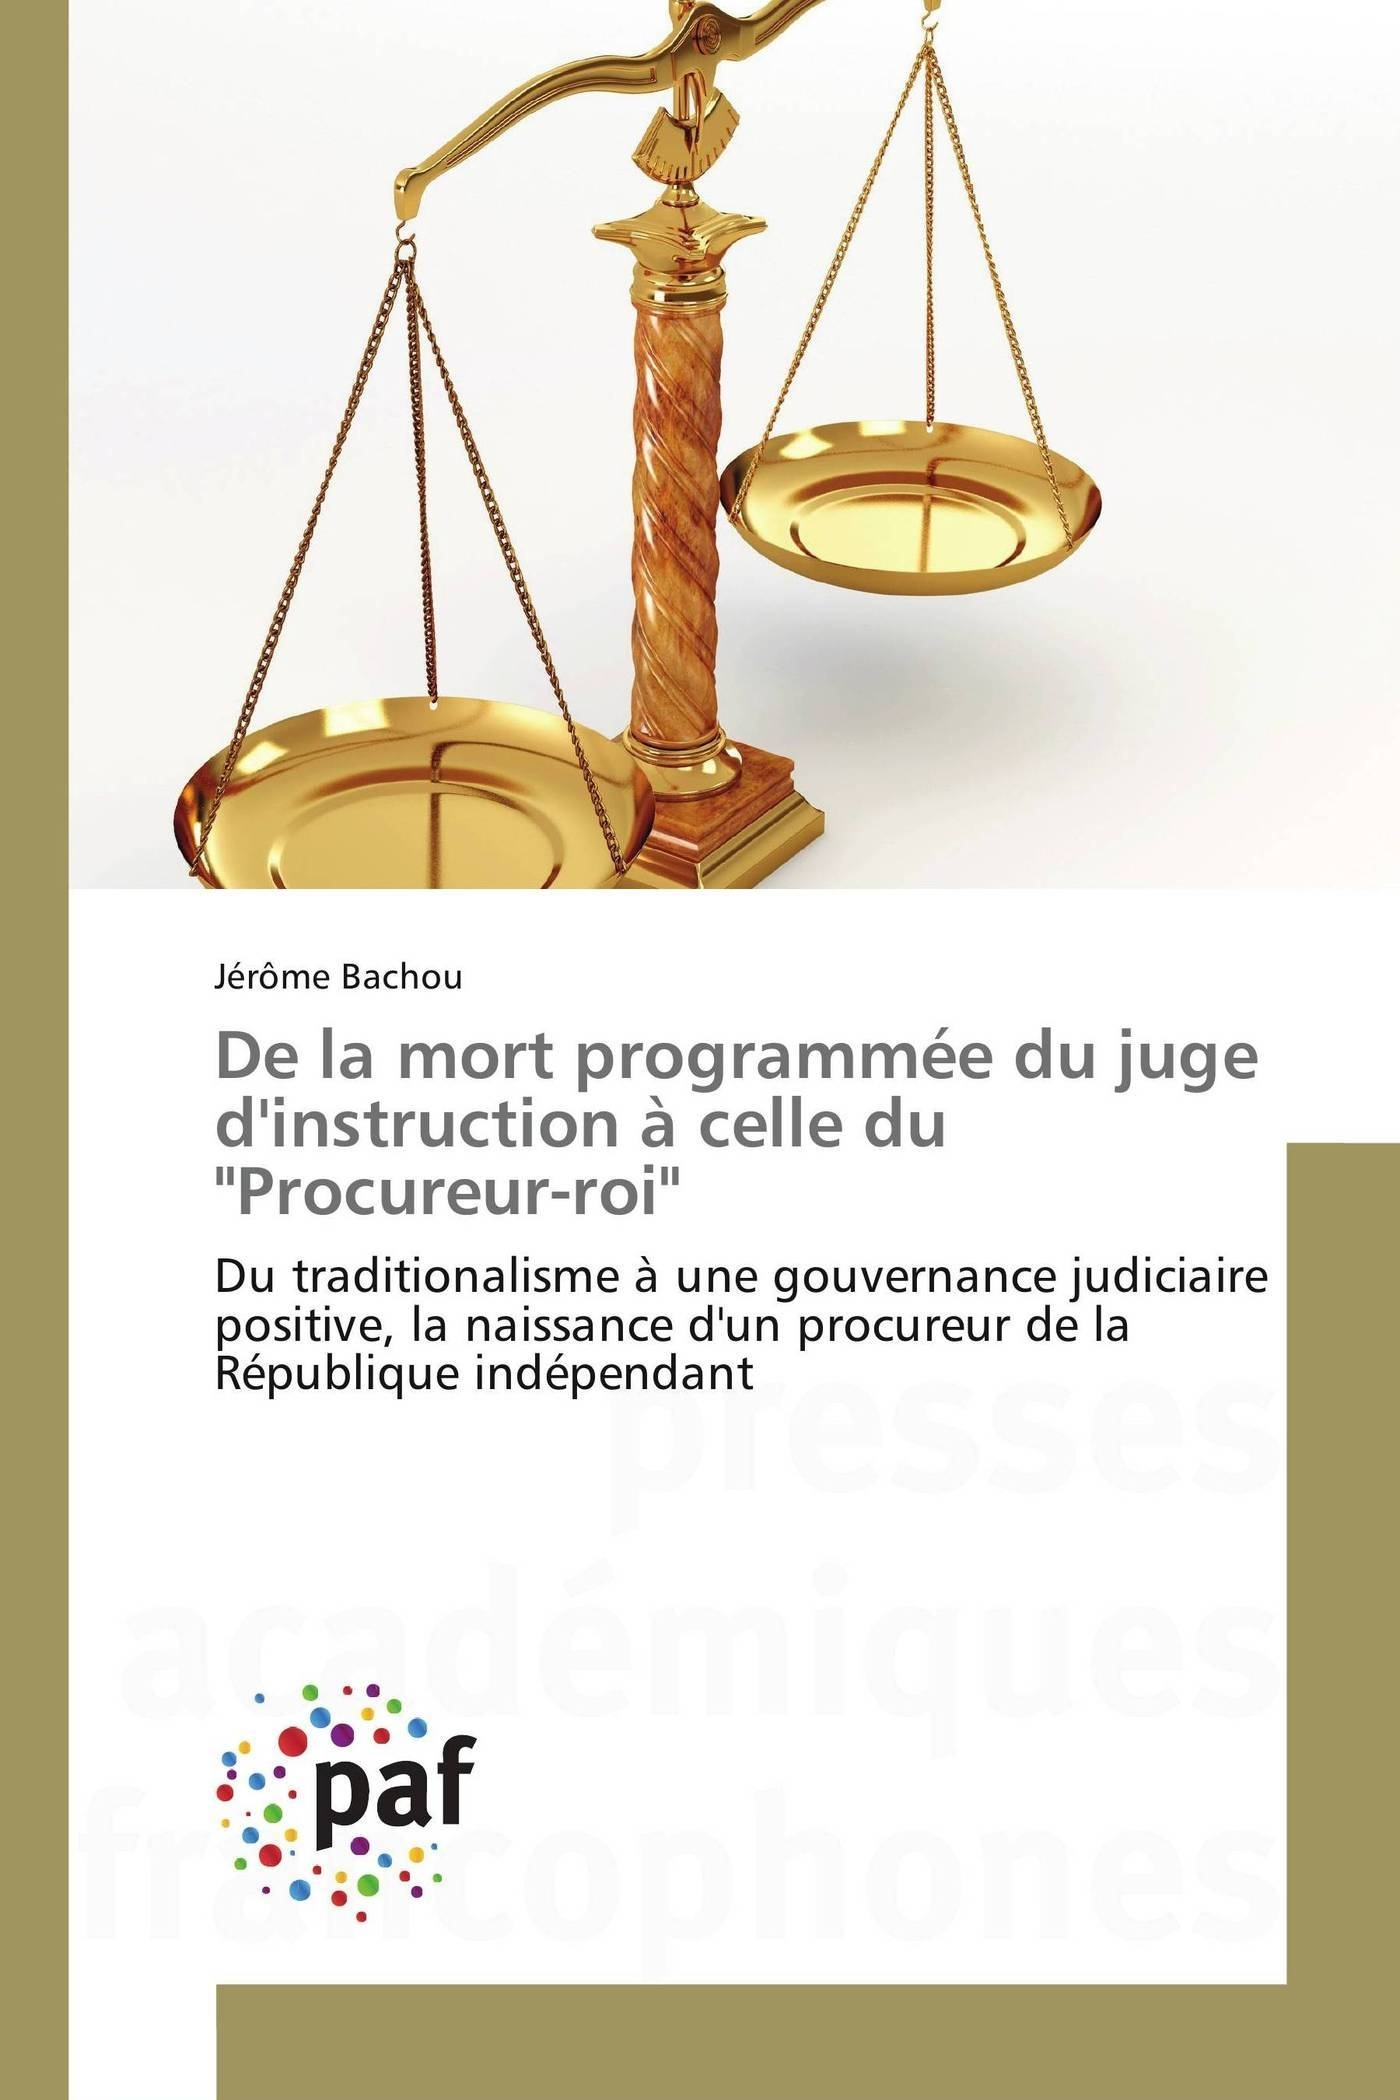 "DE LA MORT PROGRAMMEE DU JUGE D'INSTRUCTION A CELLE DU ""PROCUREUR-ROI"""